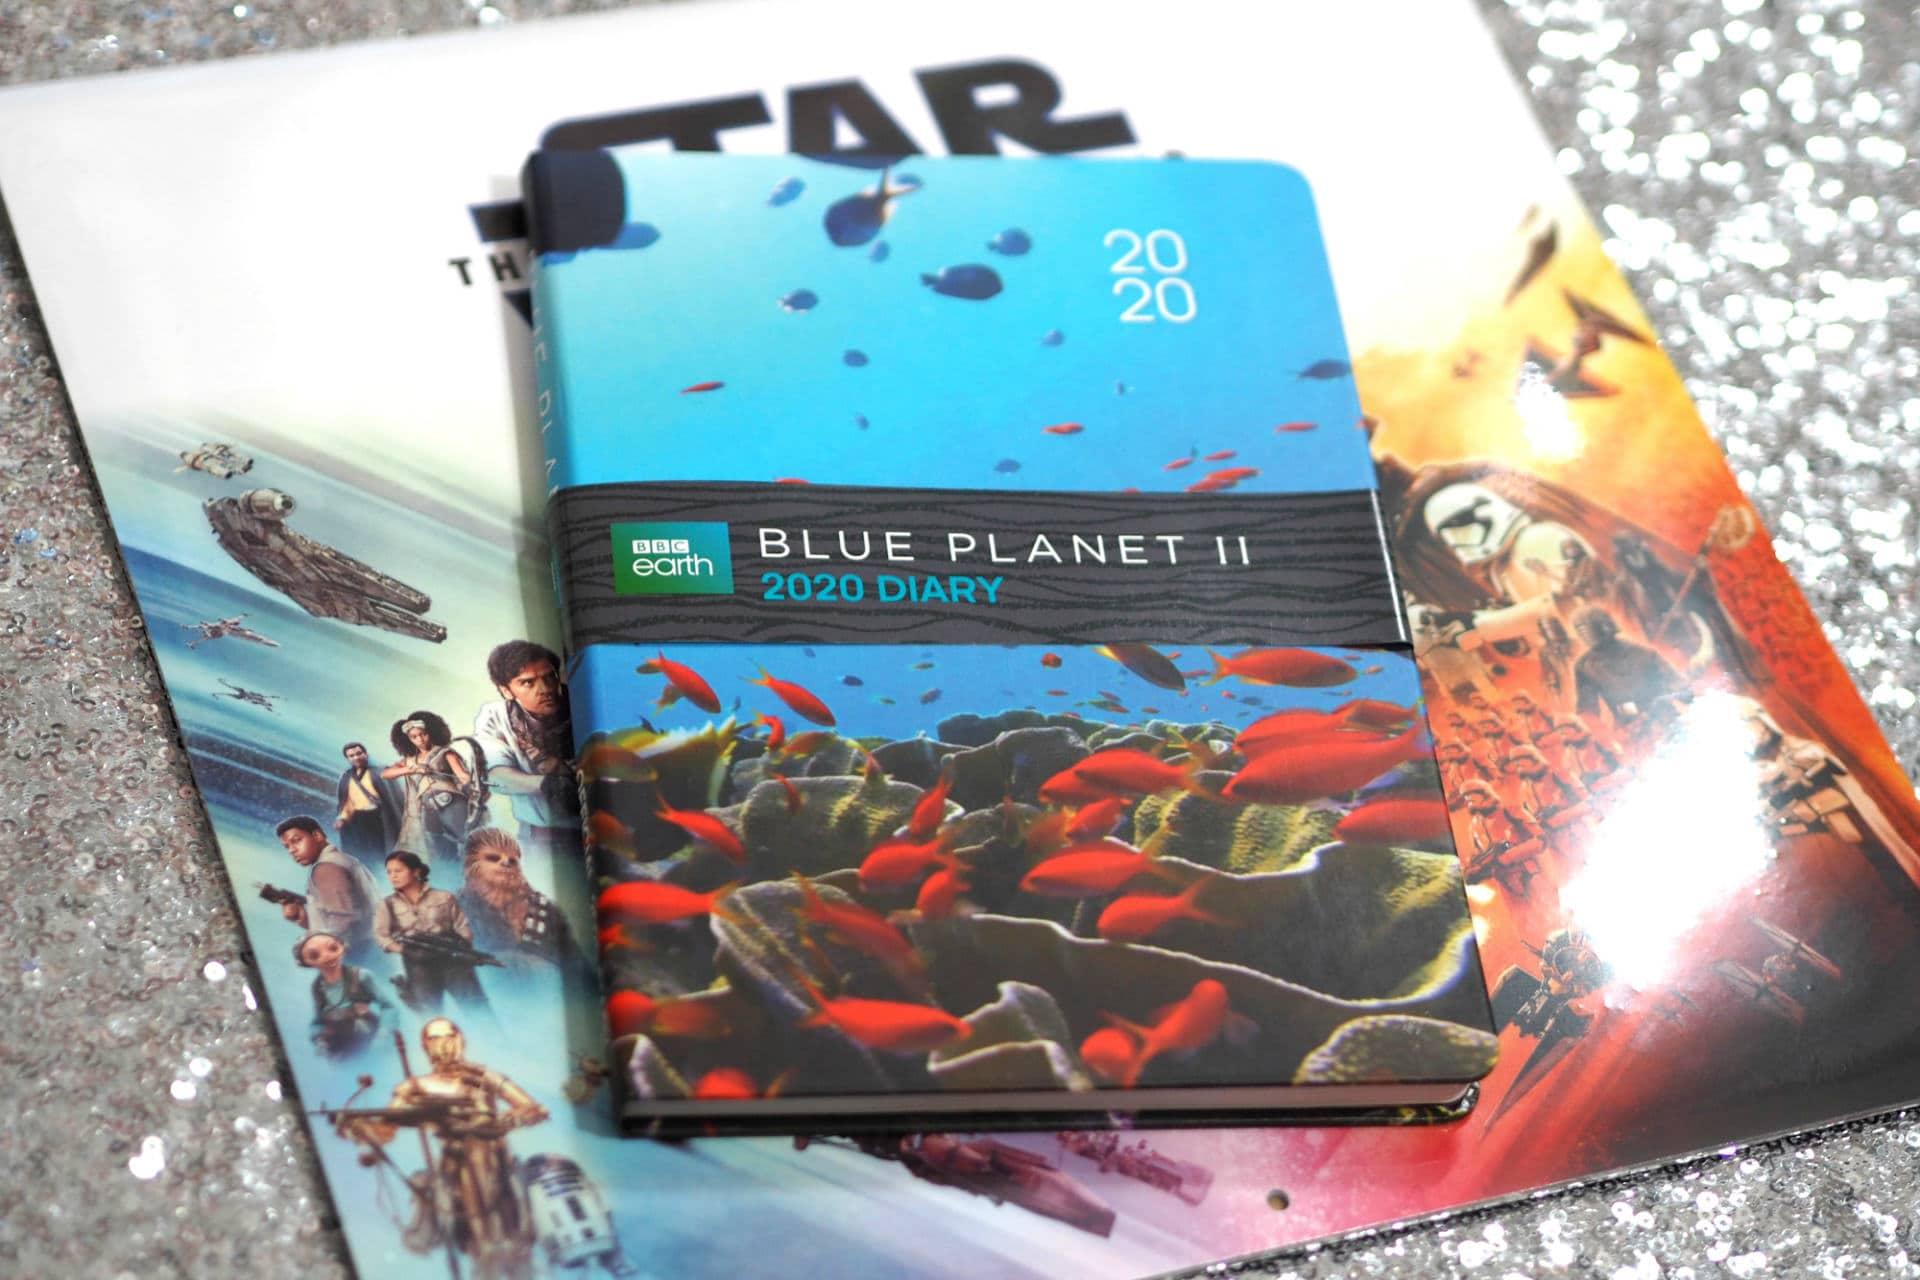 BBC Earth Blue Planet 2020 Diary & Star Wars The Rise of Skywalker 2020 Diary